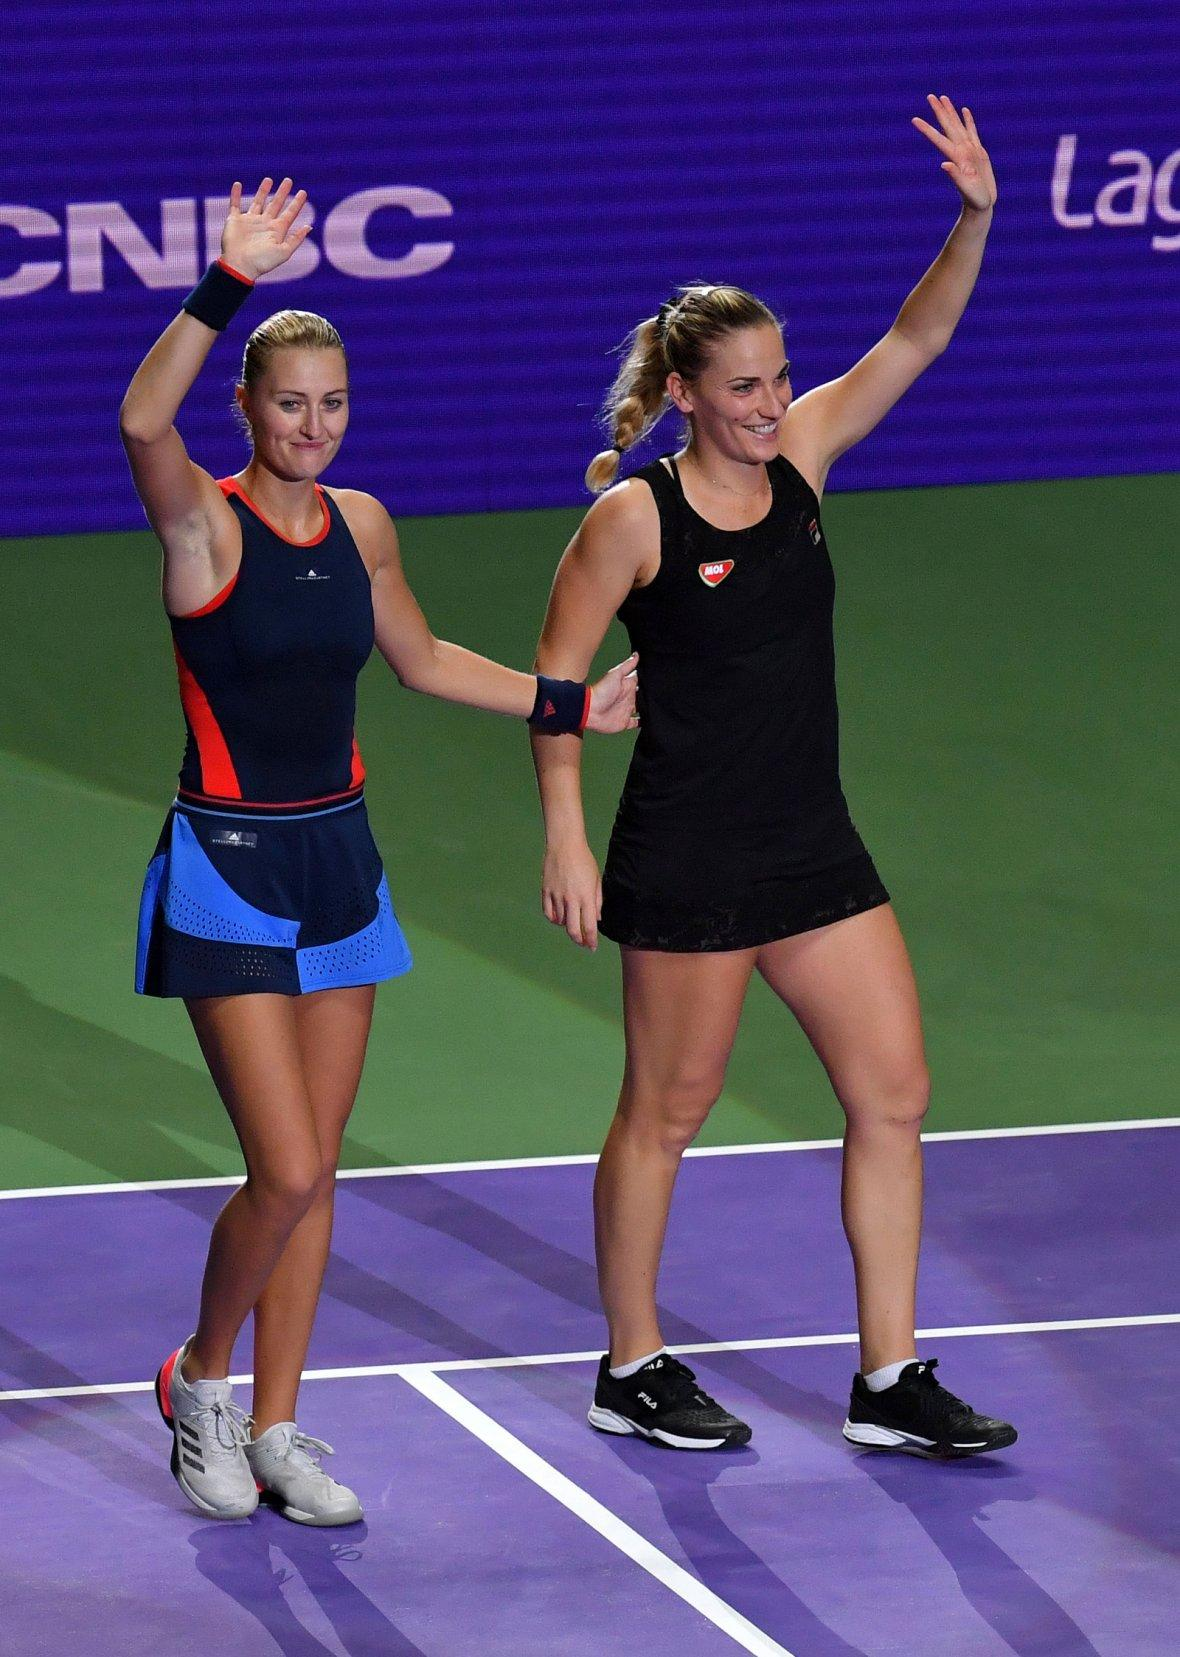 Kristina Mladenovic and Timea Babos